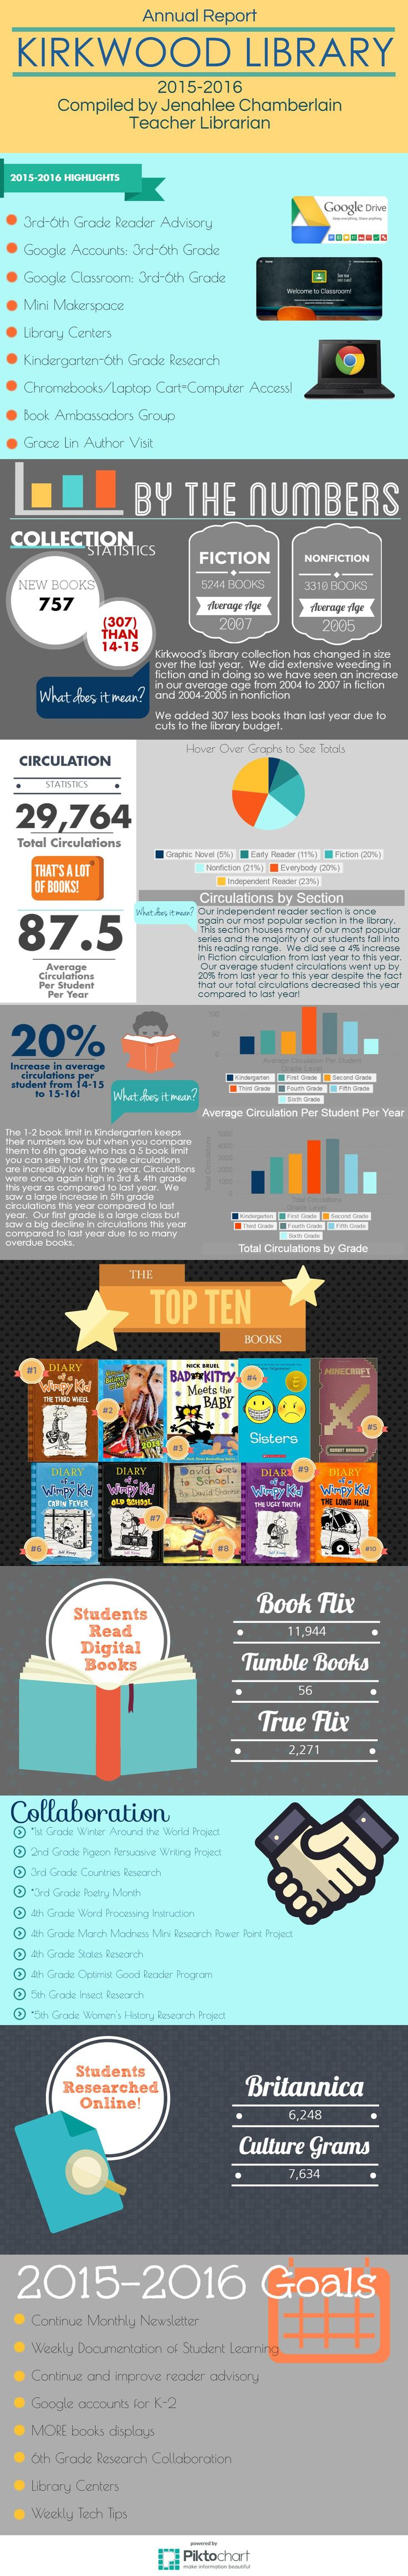 2015-2016 Annual Library Report for Kirkwood Elementary Library in ICCSD created by certified Teacher Librarian Jenahlee Chamberlain. Combines Piktochart and ThingLink for interactive sharing of information, statistics, and student learning artifacts!